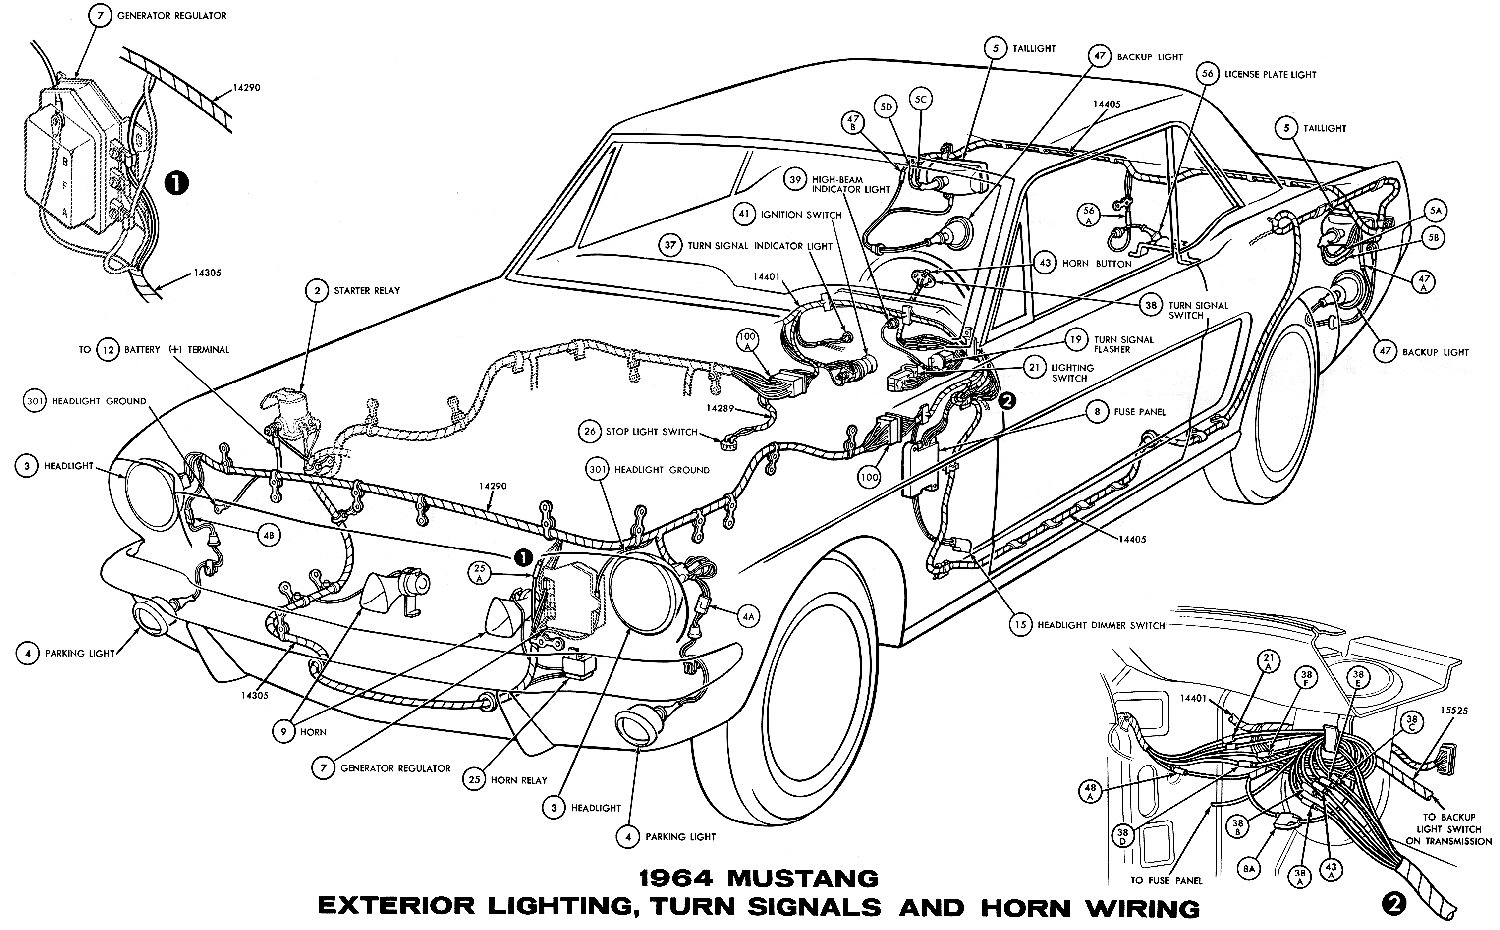 1964 Mustang Wiring Diagrams on turn signal wiring 69